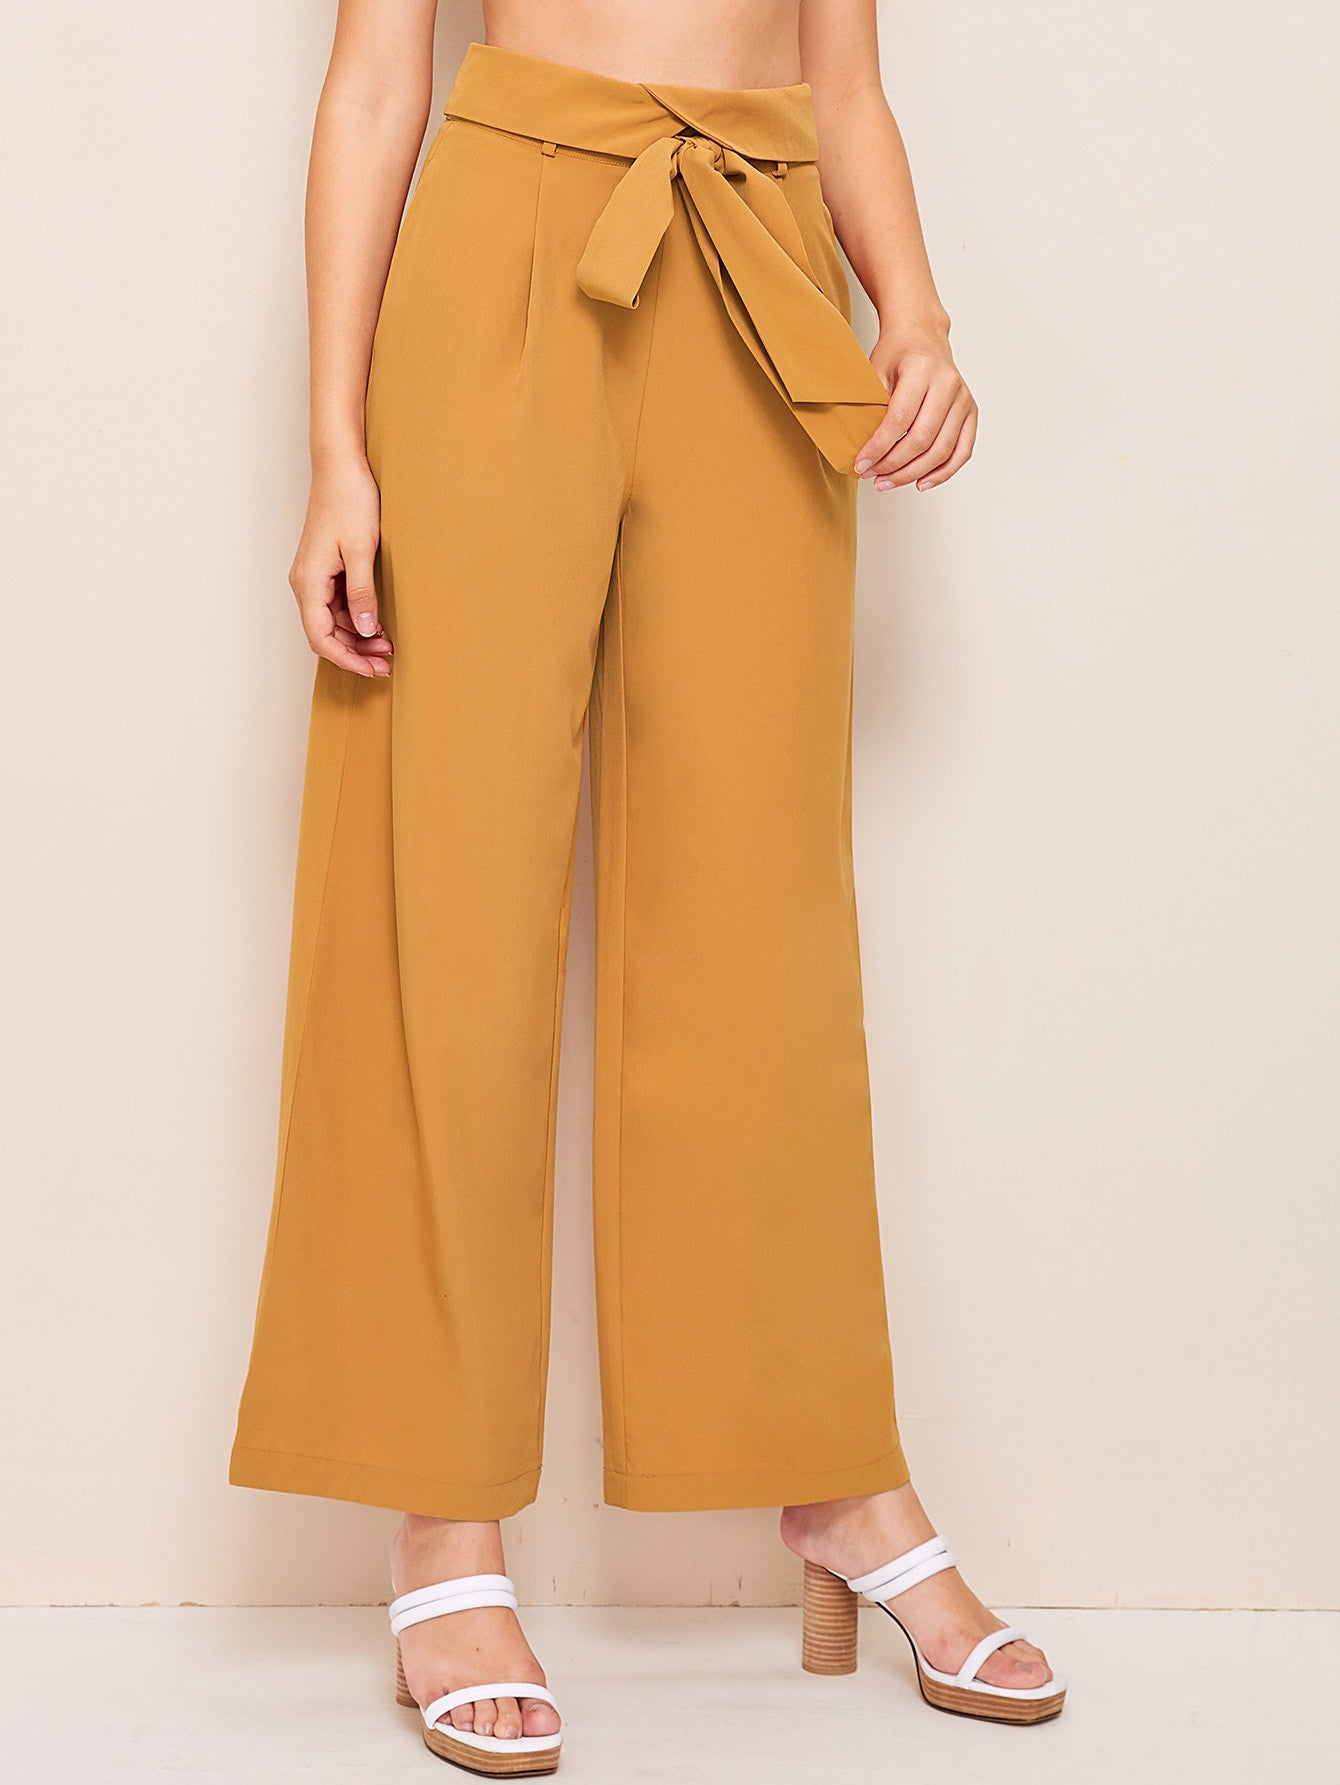 Foldover Waist Self Belted Palazzo Trousers-Vintage-Trendy-JayBoutique-Yellow-XS-Trendy-JayBoutique